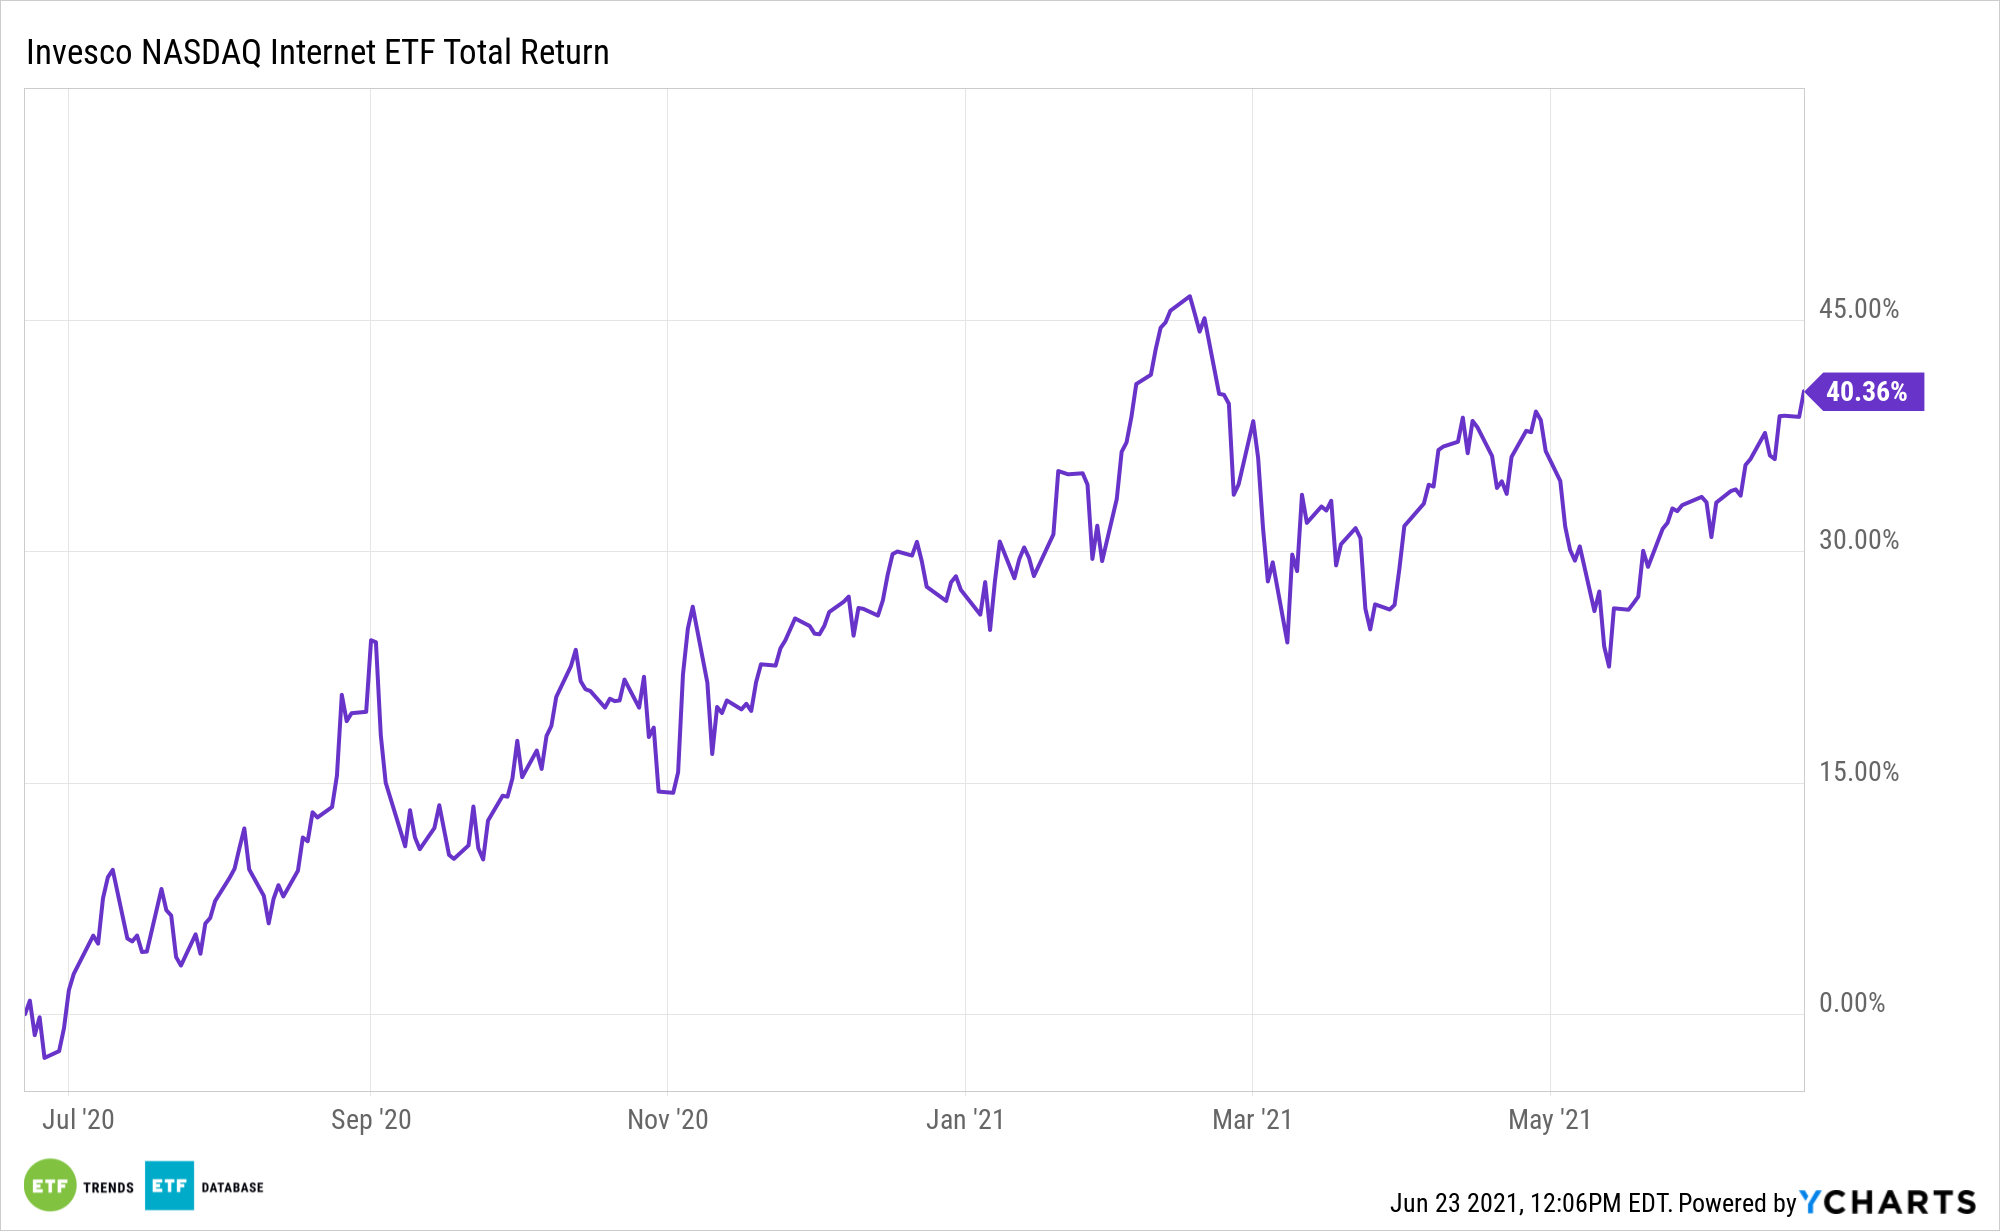 PNQI 1 Year Performance